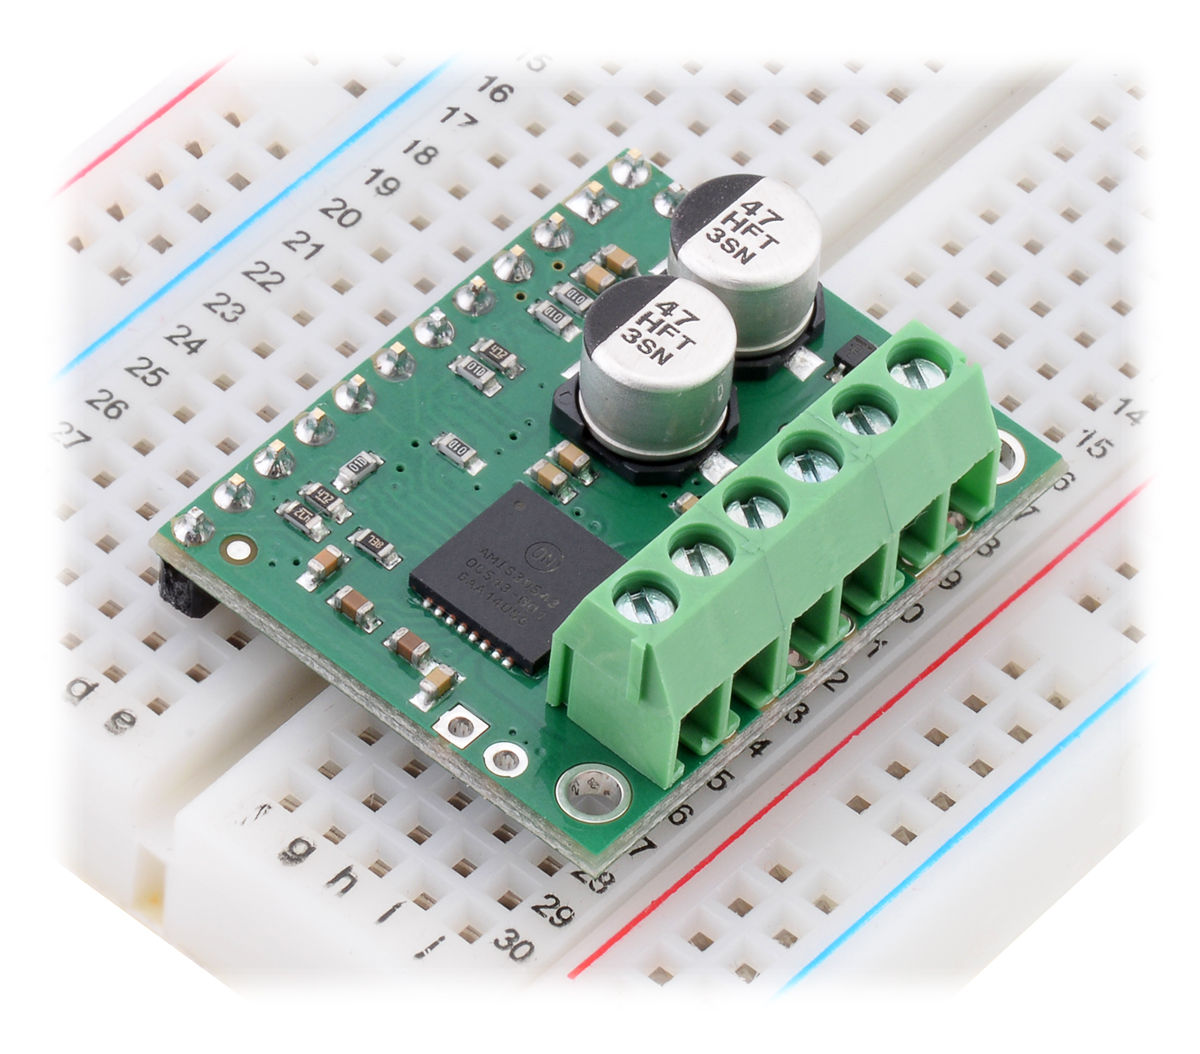 Pololu Amis 30543 Stepper Motor Driver Carrier Control Circuit Proteus Simulation Pic Assembly Source Included Hardware